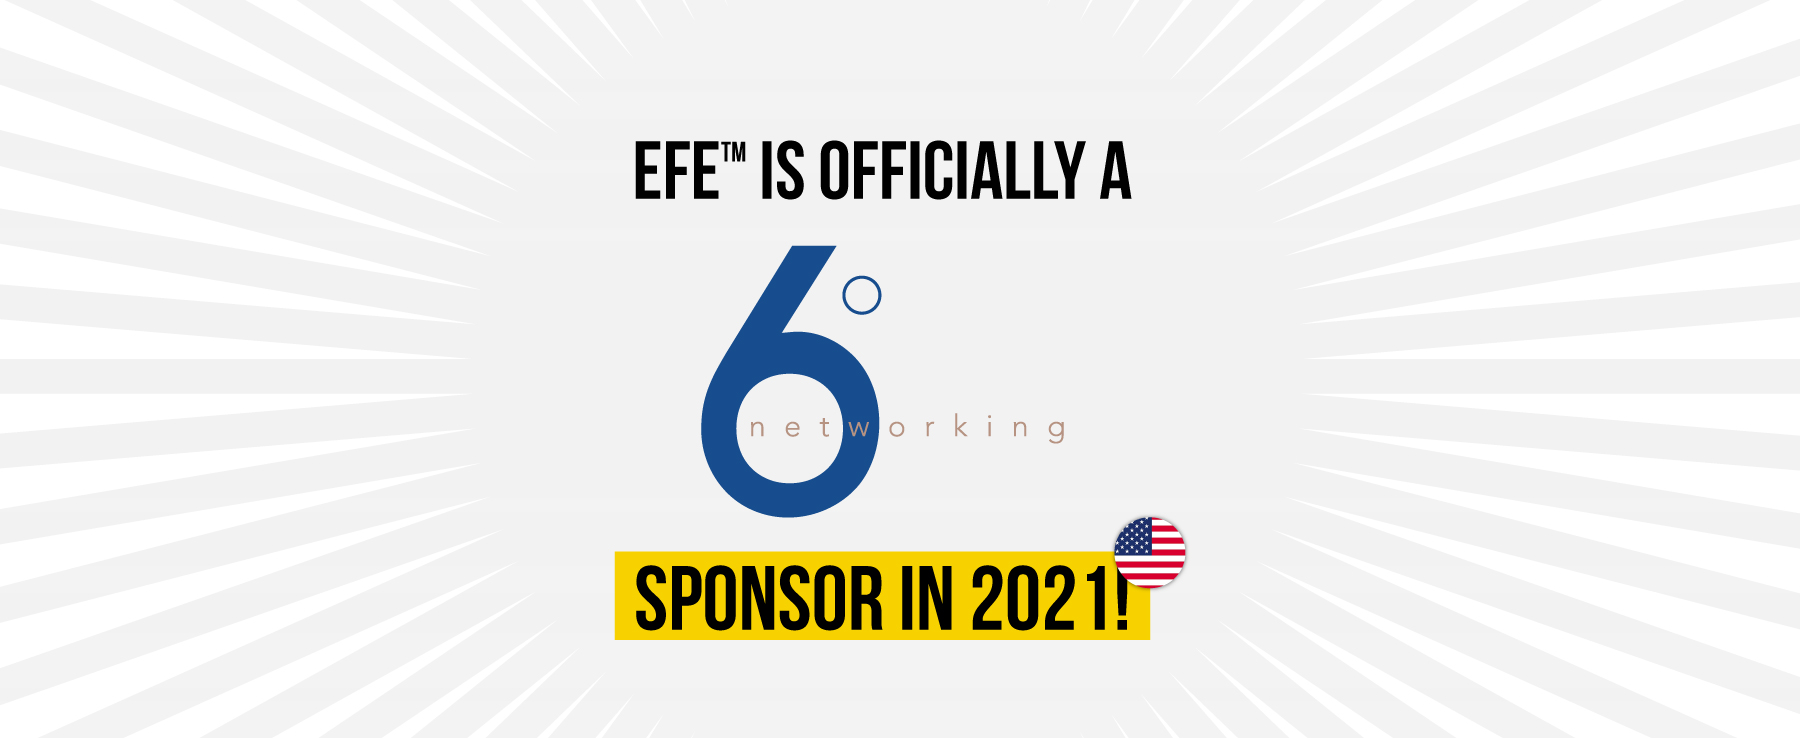 EFE™️ IS OFFICIALLY A 6º Network SPONSOR IN 2021!